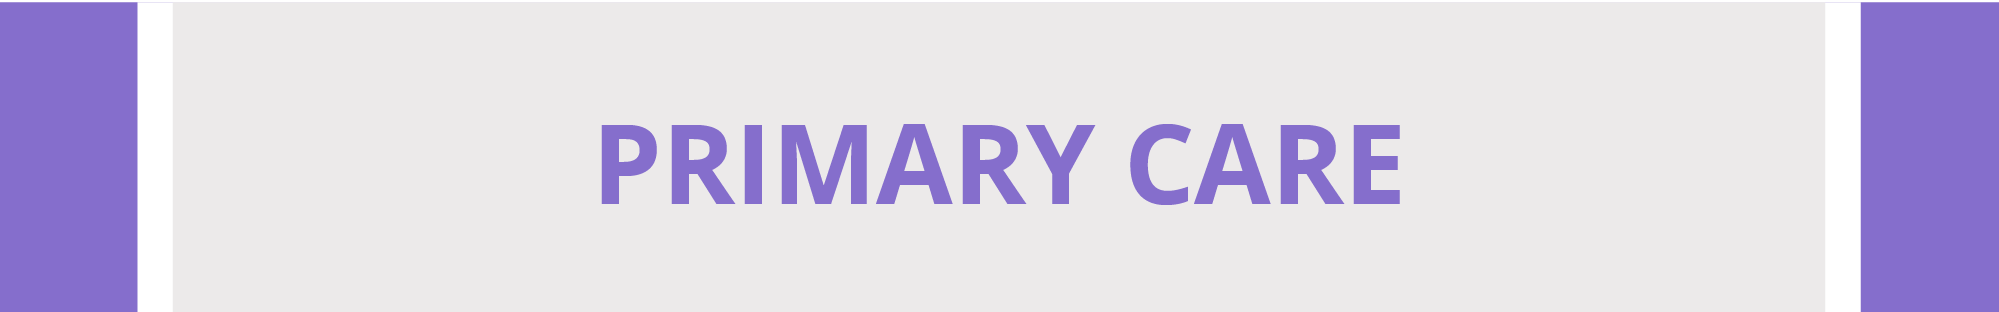 primarycare-banner-2018_Top.png